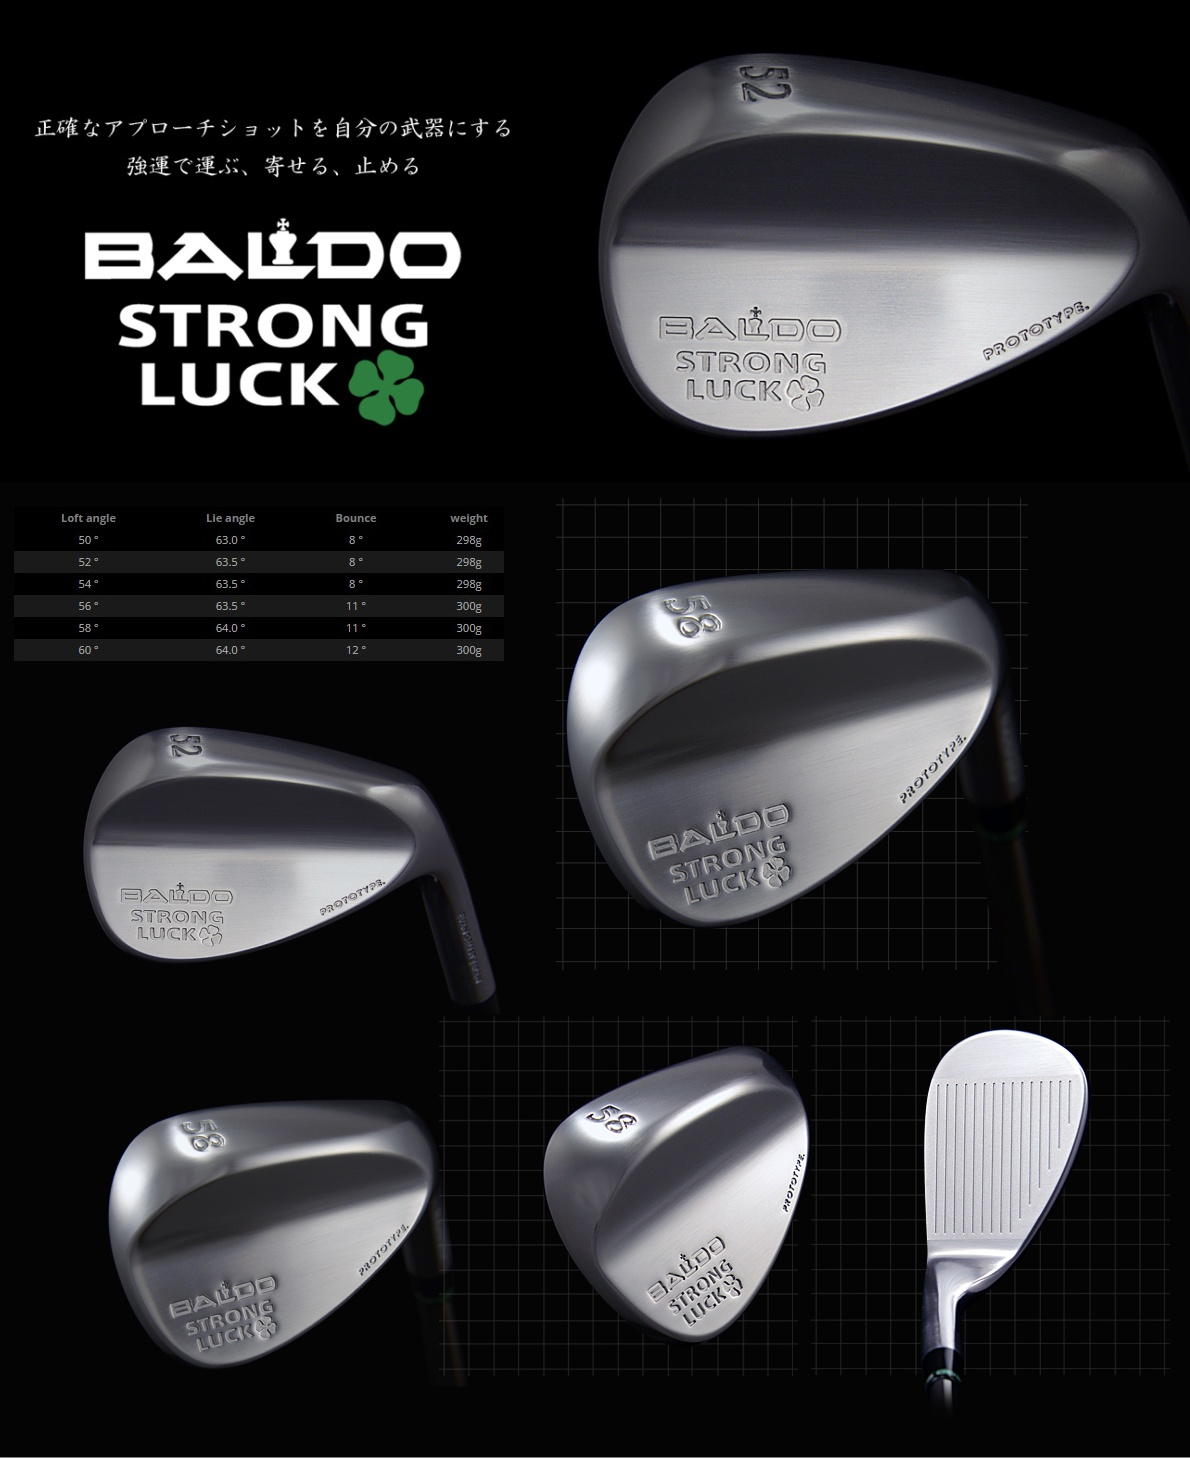 Baldo Strong Luck Wedge